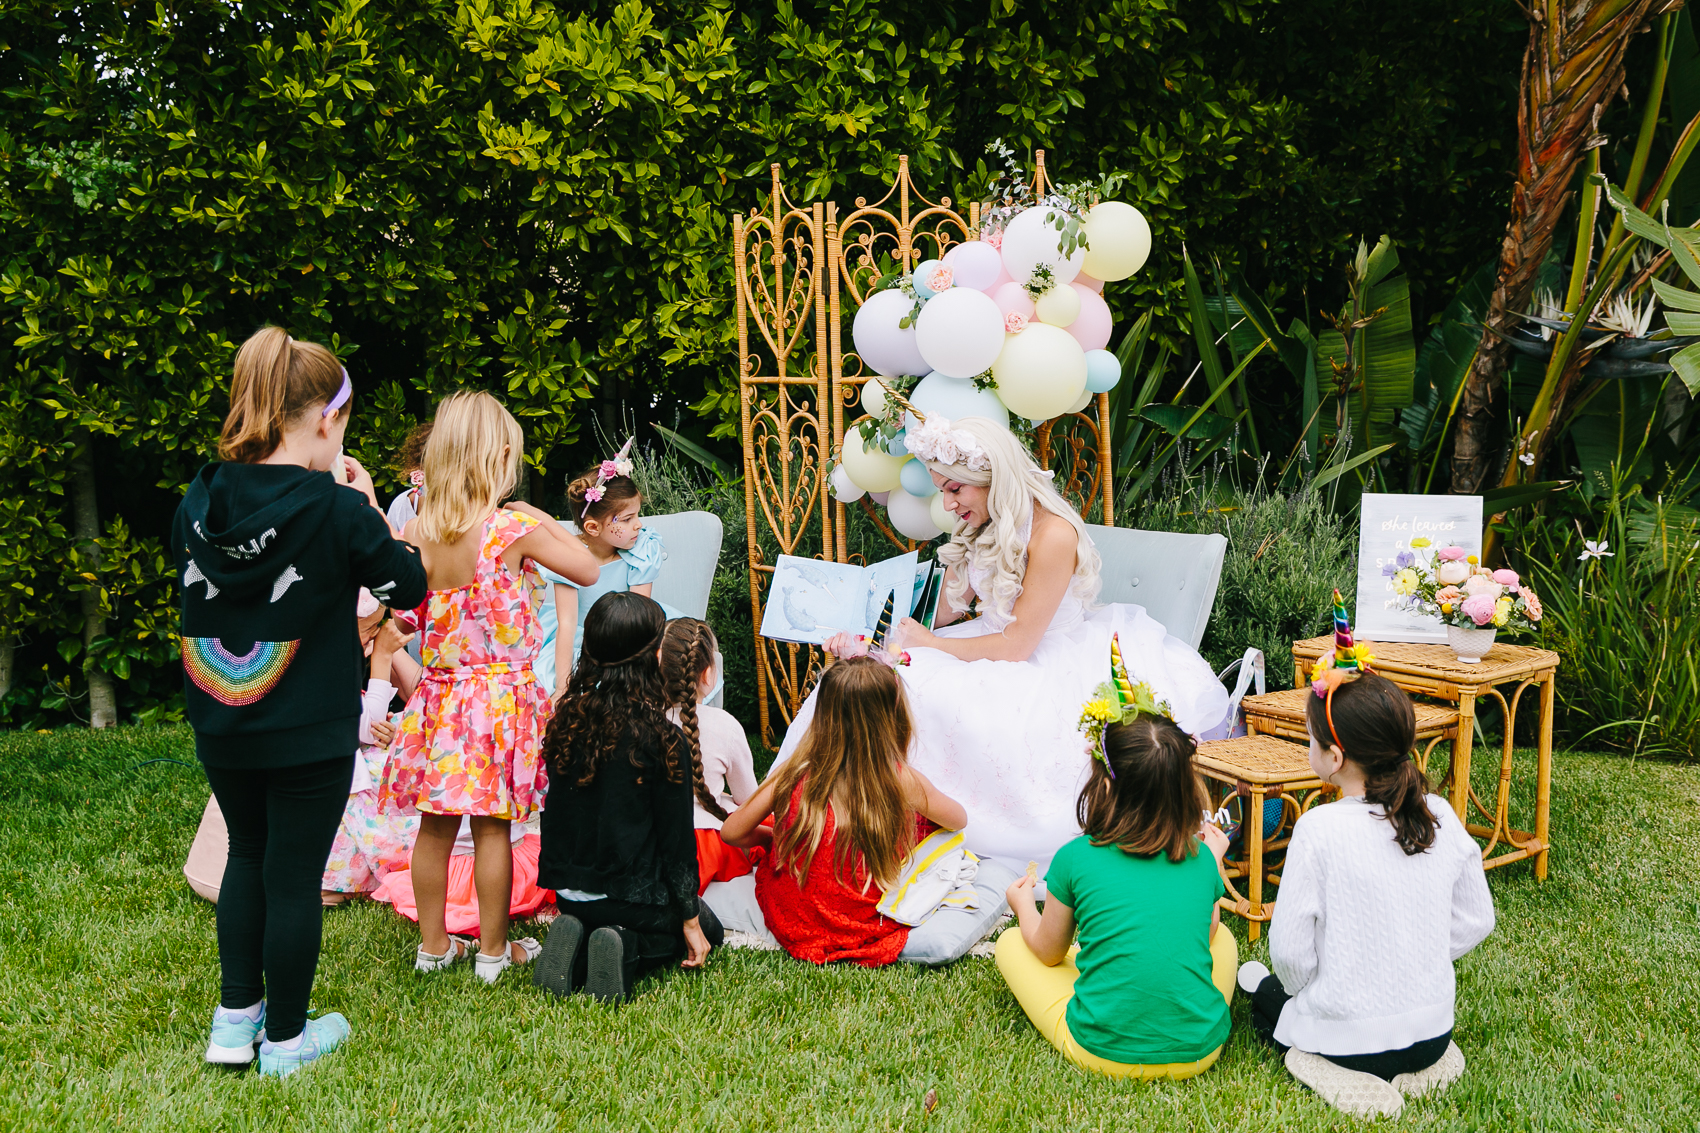 Los_Angeles_Family_Photographer_Luxury_Childrens_Party_Beverly_Hills_Unicorn_Birthday_Party-1155.jpg